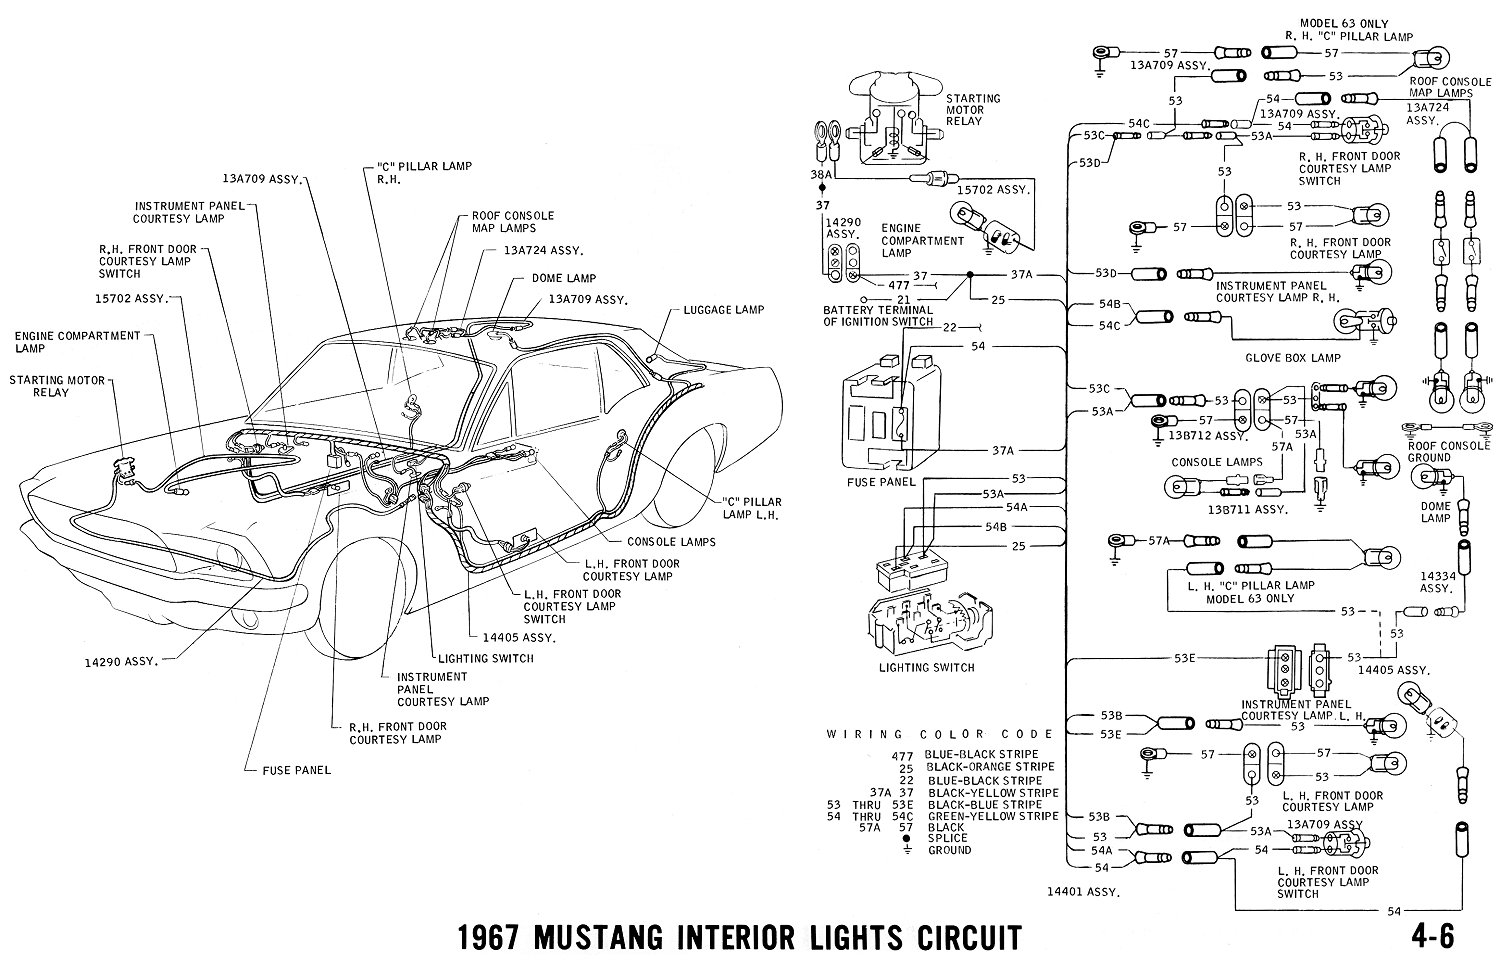 1968 Camaro Tail Lights Diagram. Wiring. Wiring Diagram Images